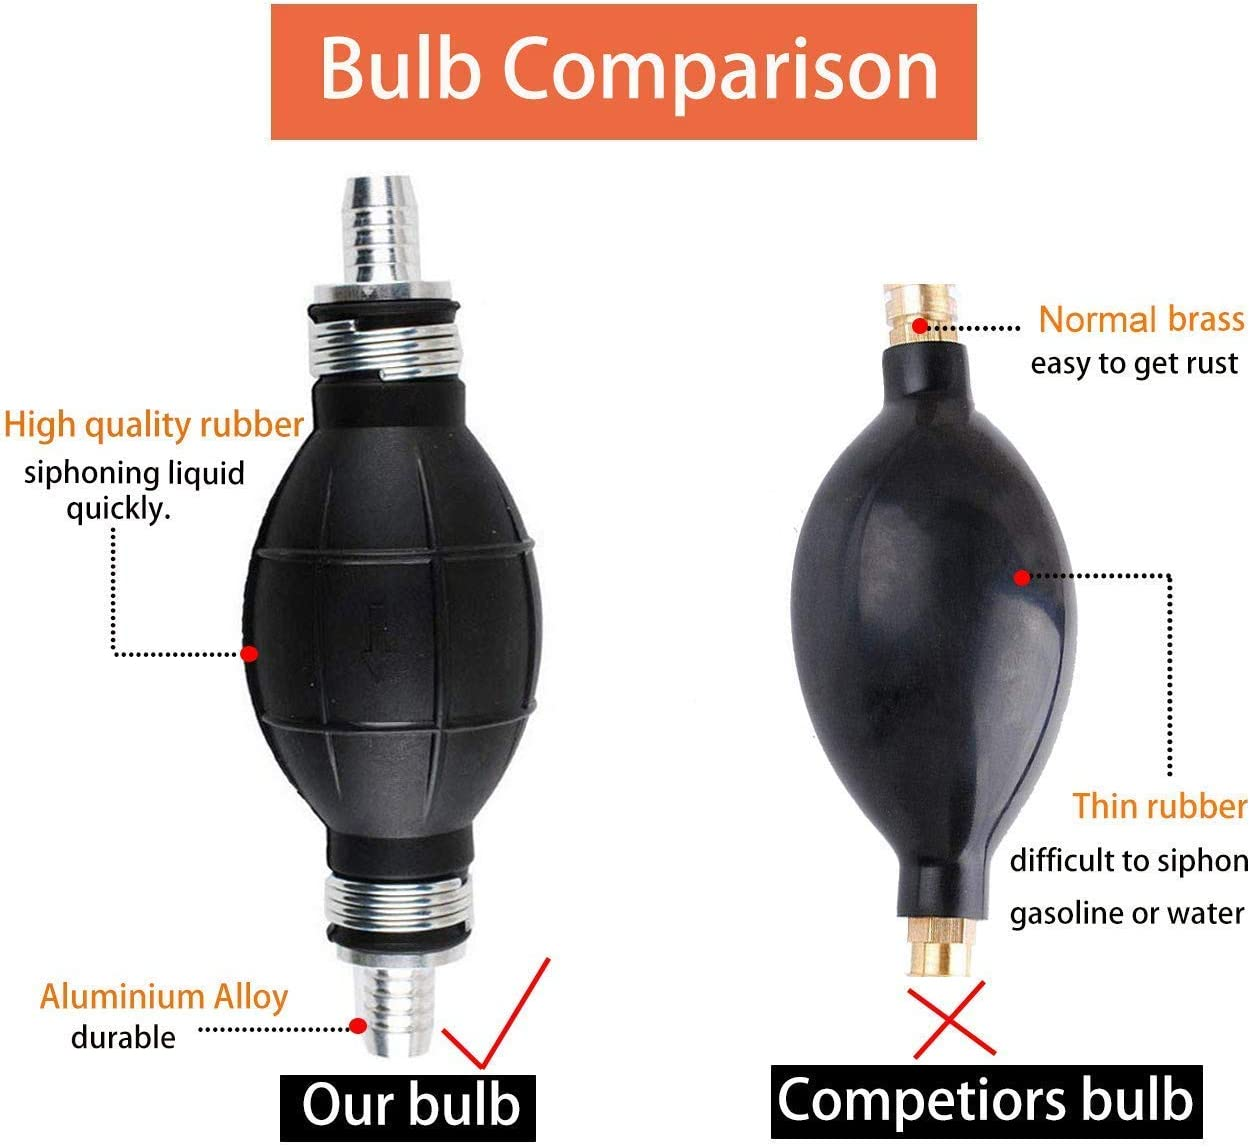 Hose OD 10mm Podoy Siphon Pump for Gas Oil Water Fuel Transfer,Gasoline Siphone Hose with 8mm Rubber Bulb,Fuel Transfer Pump with 2 Eco-Friendly Hose